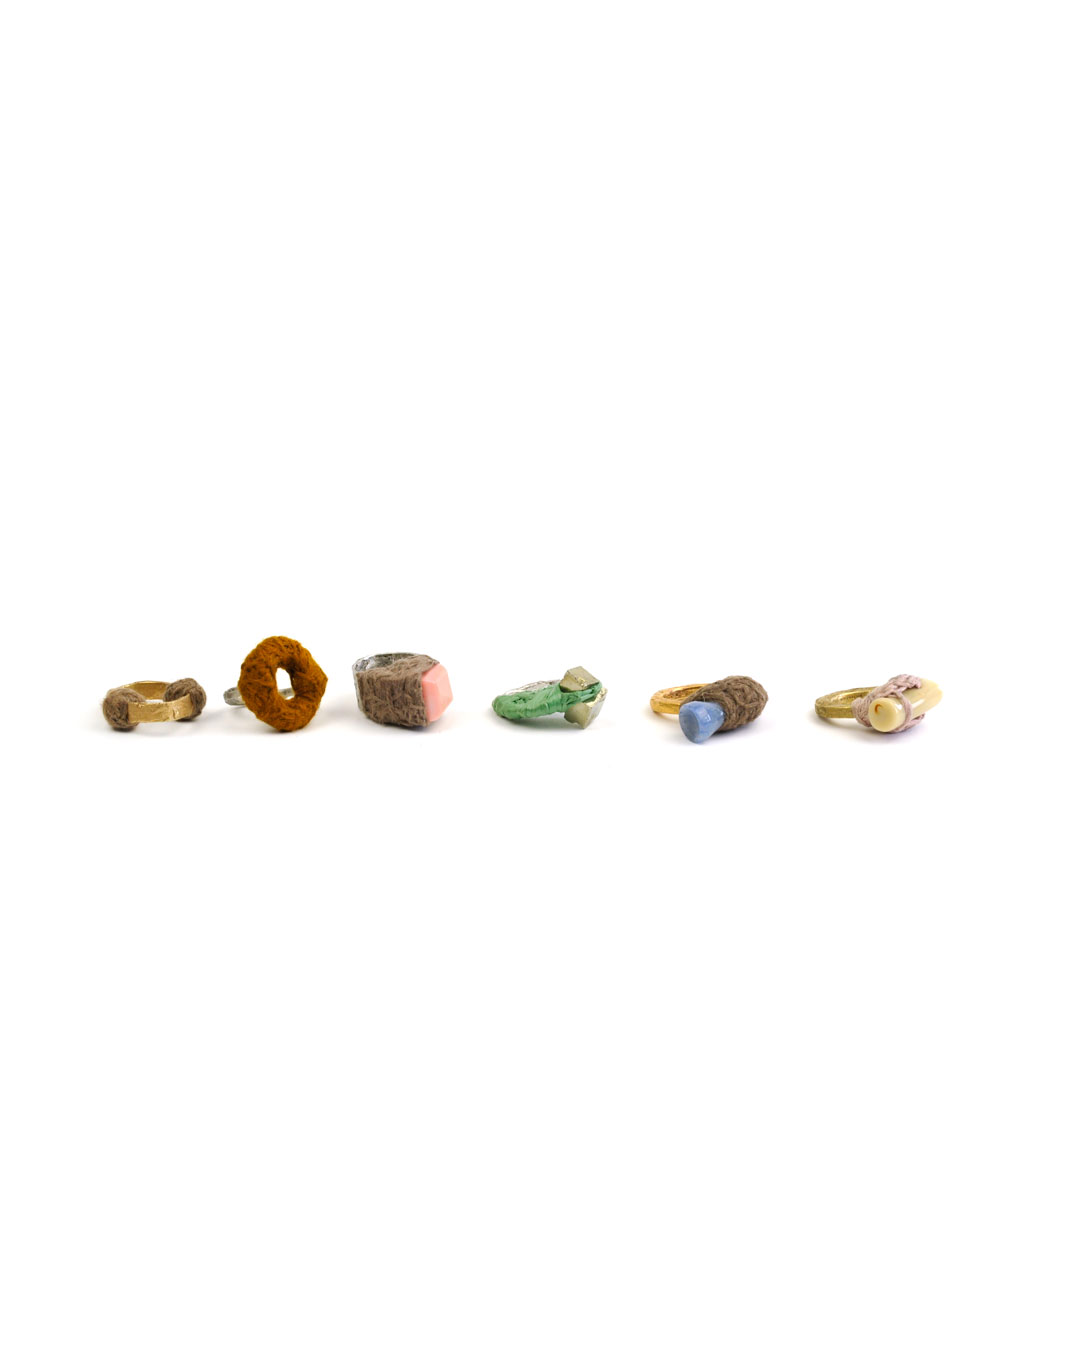 Iris Bodemer, untitled, 2004, ring set; silver, bronze, wool, raffia, stones, various dimensions, €2500